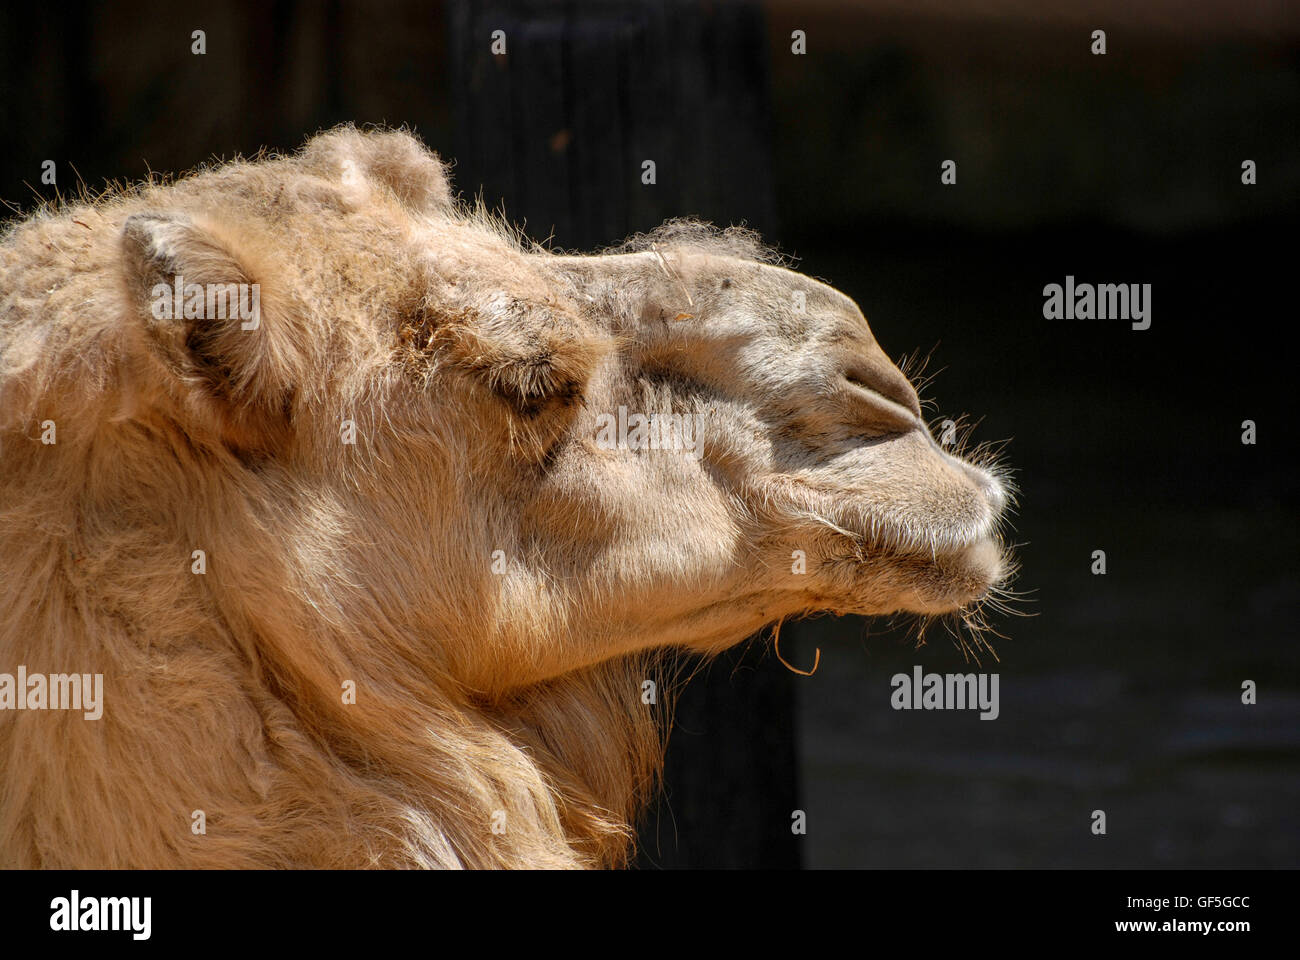 Close up of a head of a camel on black background. Looking right - Stock Image